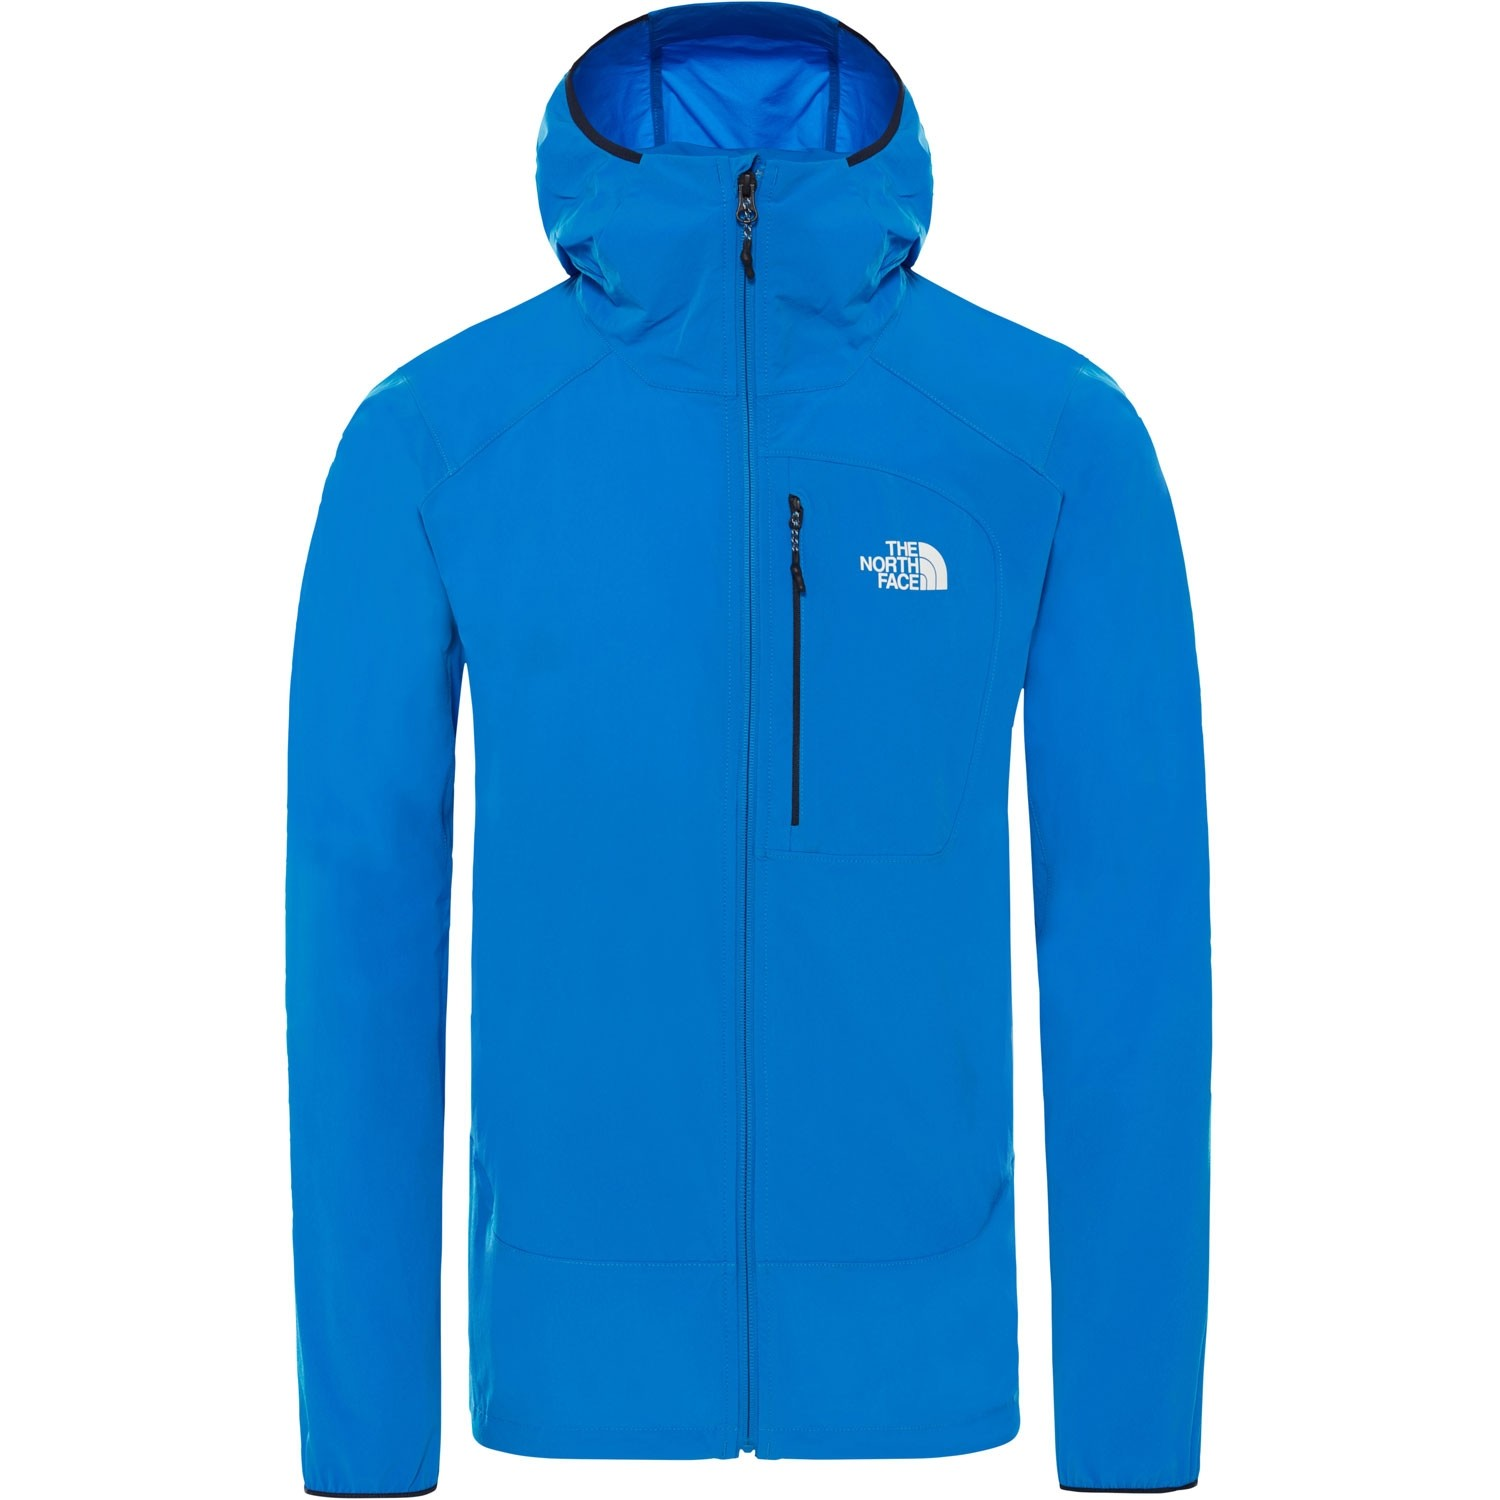 66061a7ba The North Face North Dome Stretch Wind Jacket | Outside.co.uk